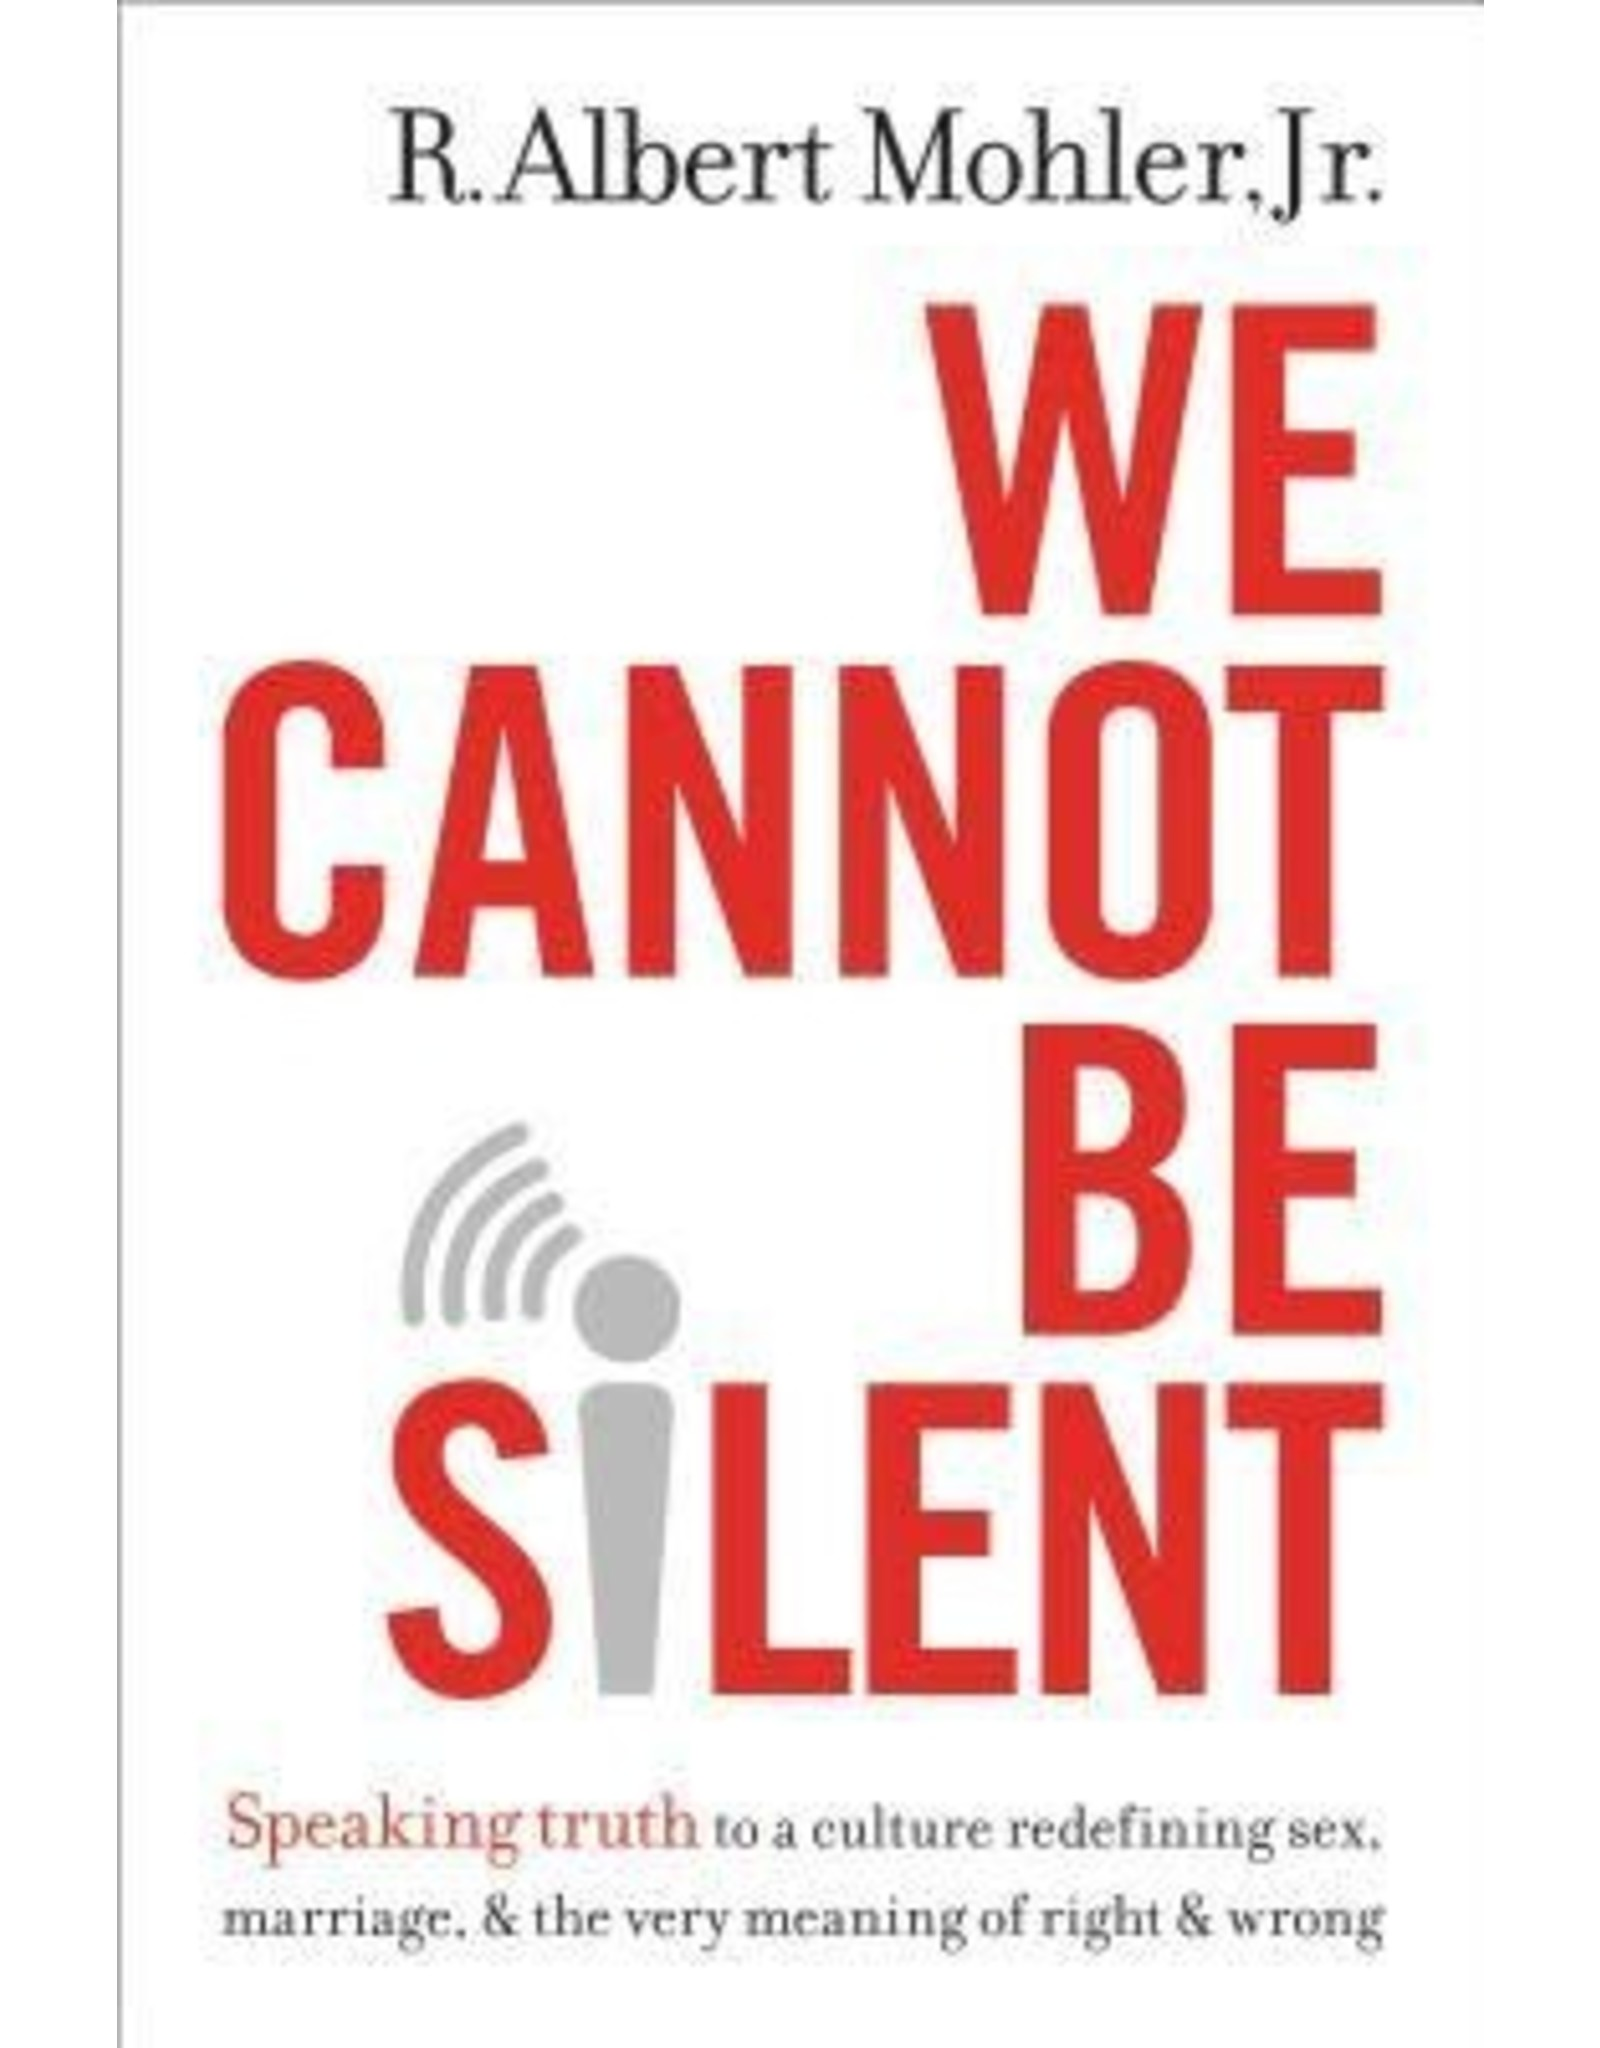 Mohler We Cannot be Silent